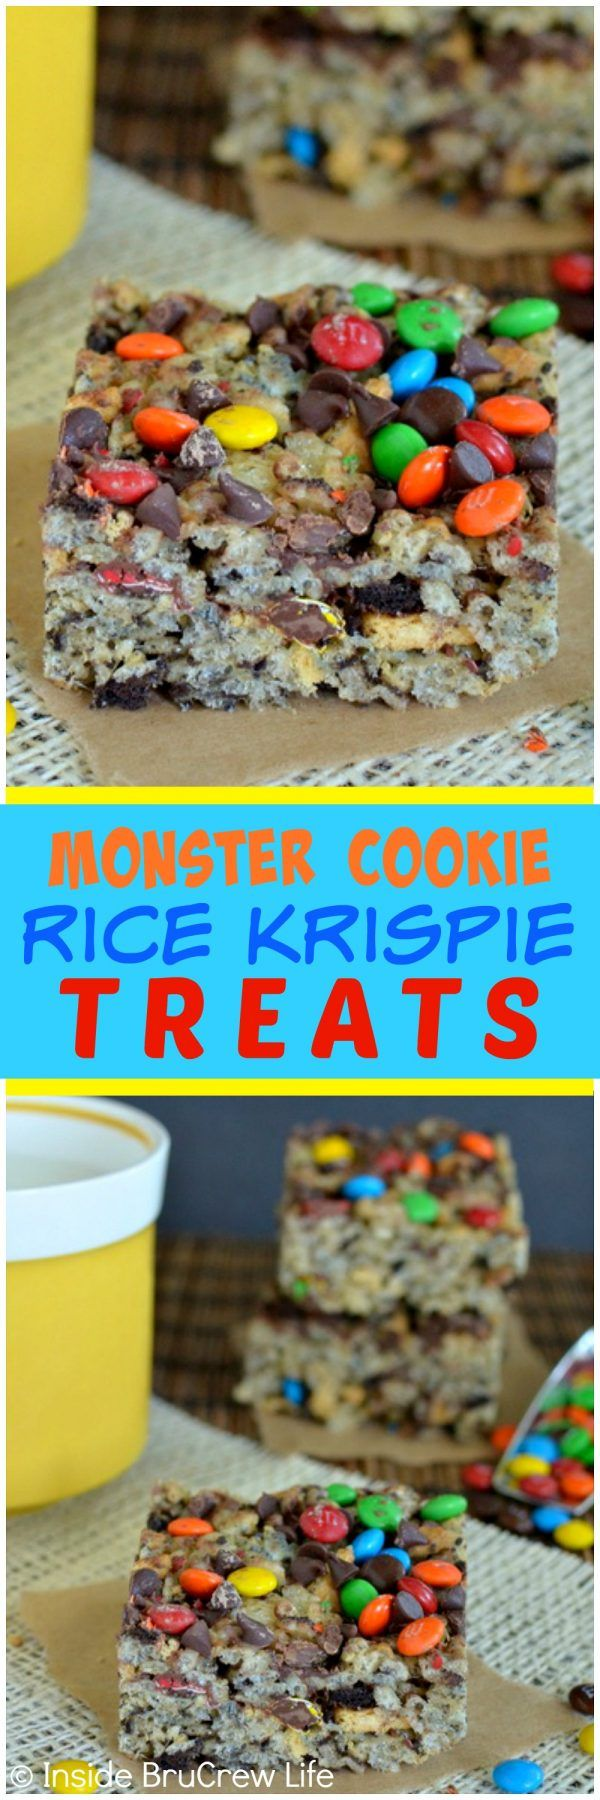 Monster Cookie Rice Krispie Treats - these easy no bake bars are loaded with two kinds of cookies and candy! Great dessert recipe to share with friends!